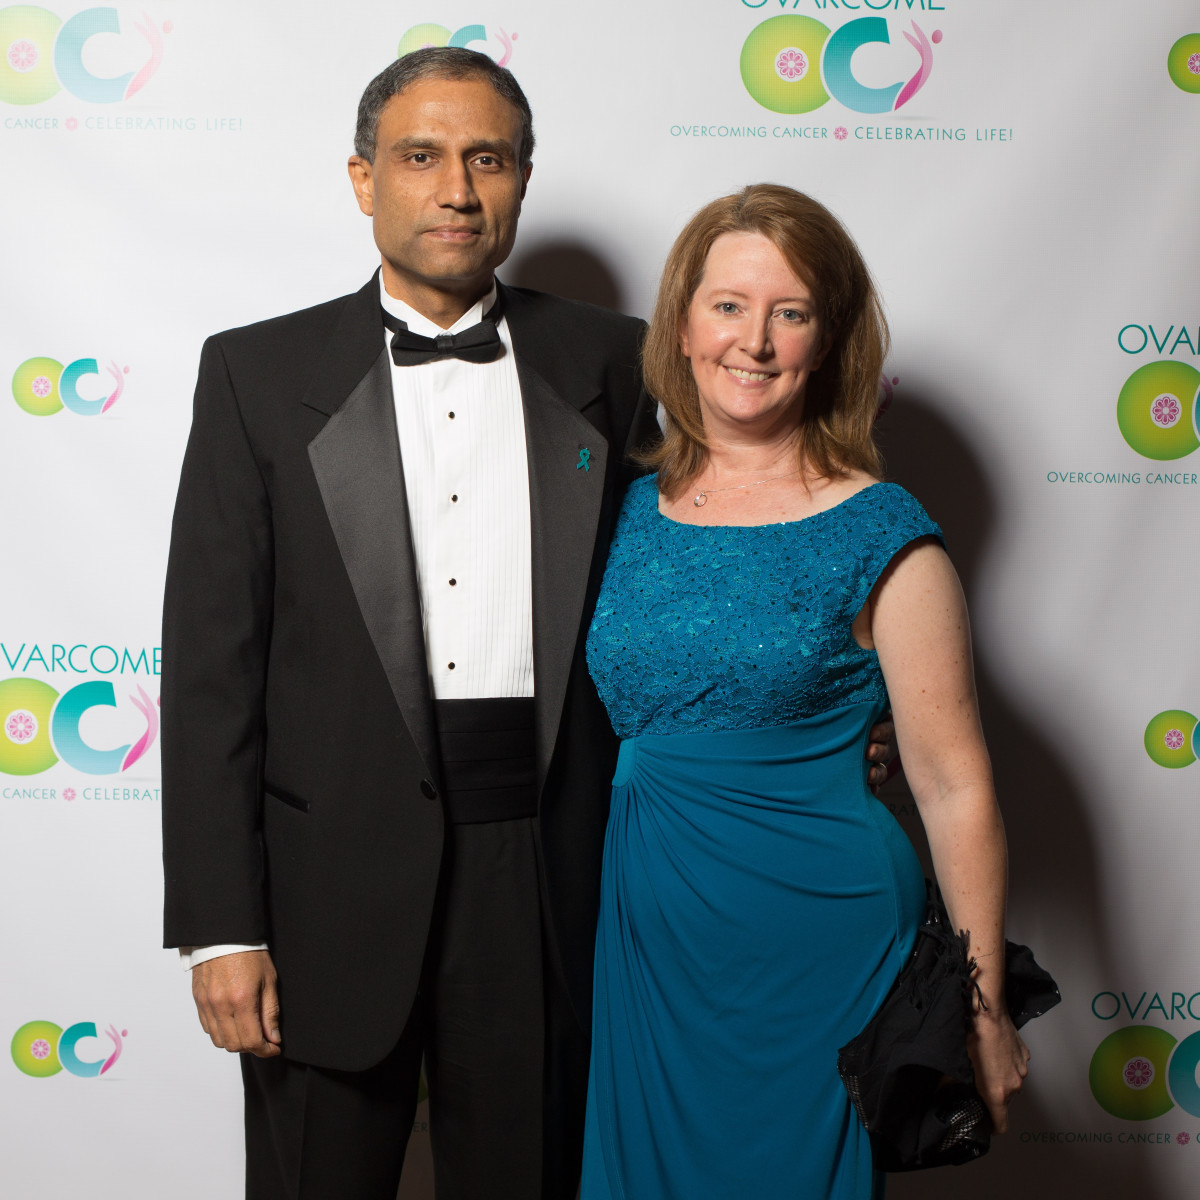 Houston, Ovarcome Gala, May 2016, Dr. Anil Sood, Kelly Sood